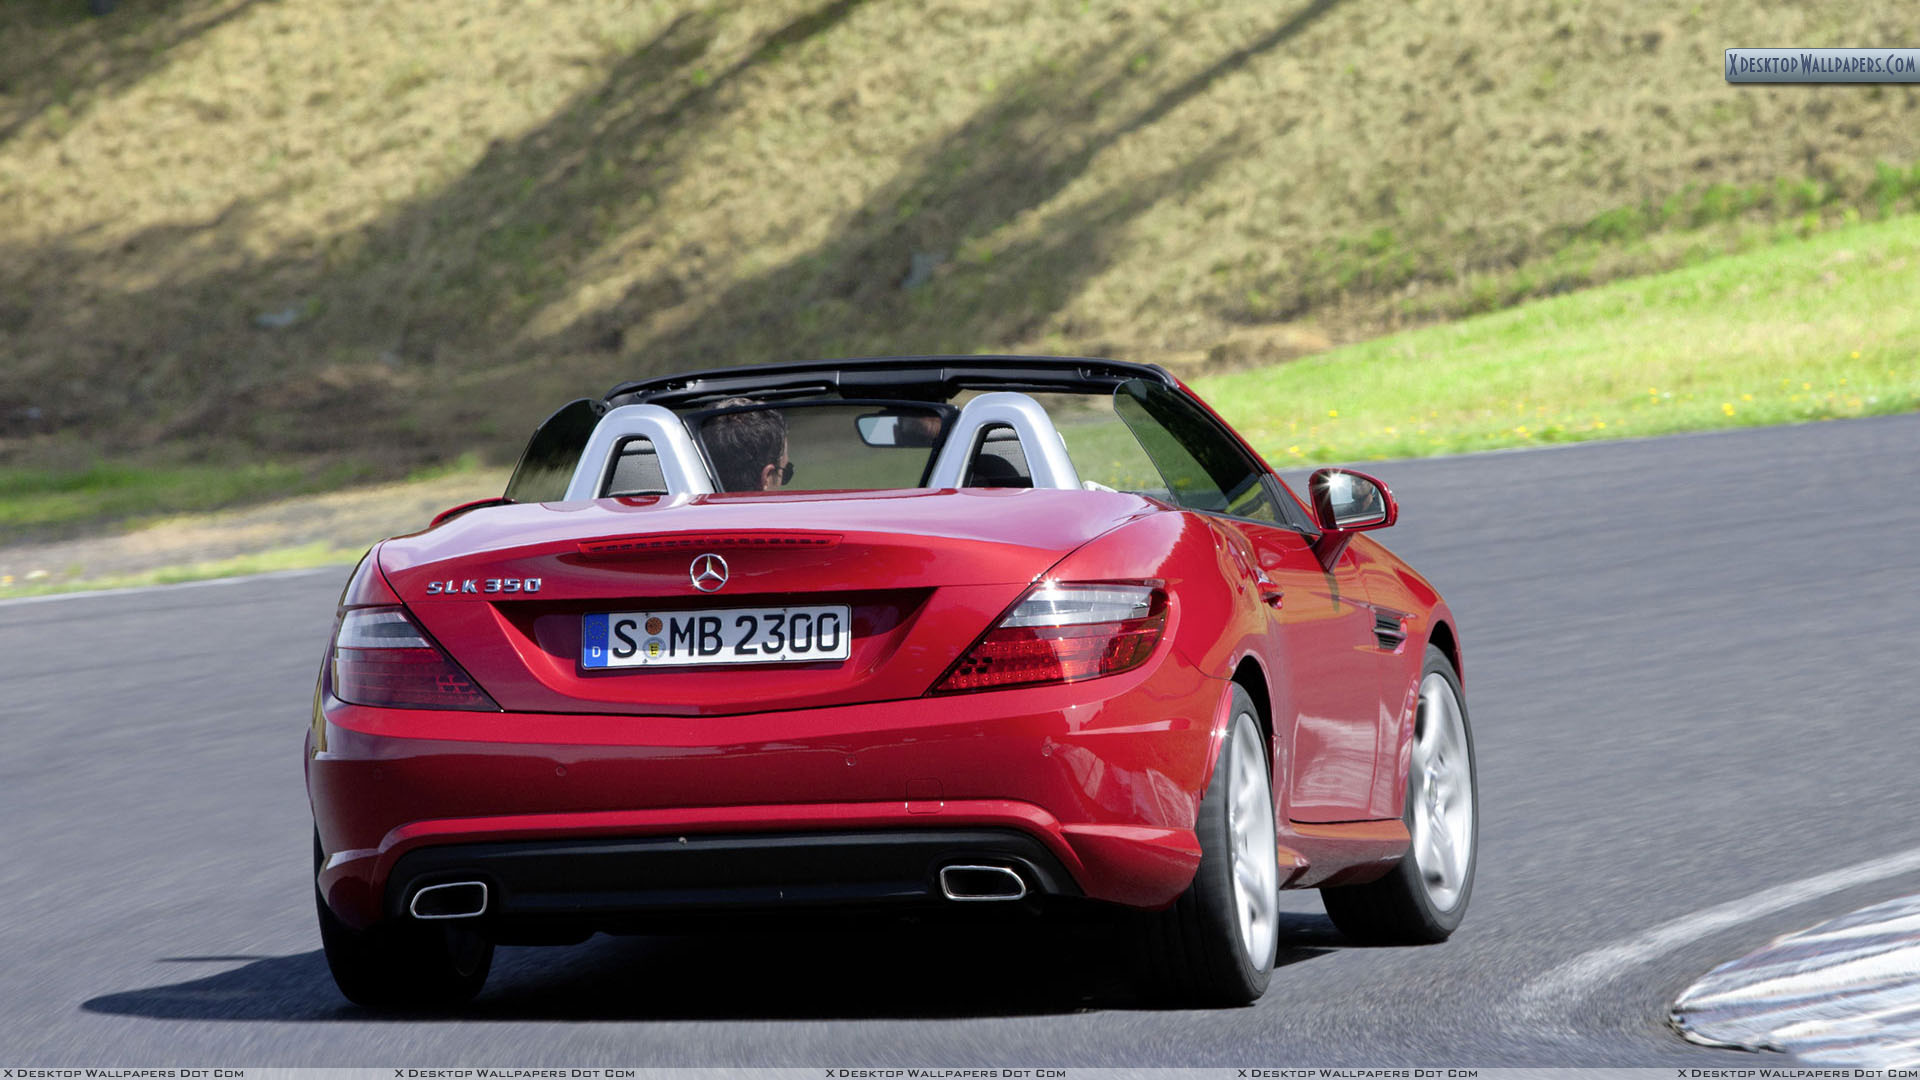 back pose of red mercedes benz slk 350 on highway wallpaper. Black Bedroom Furniture Sets. Home Design Ideas